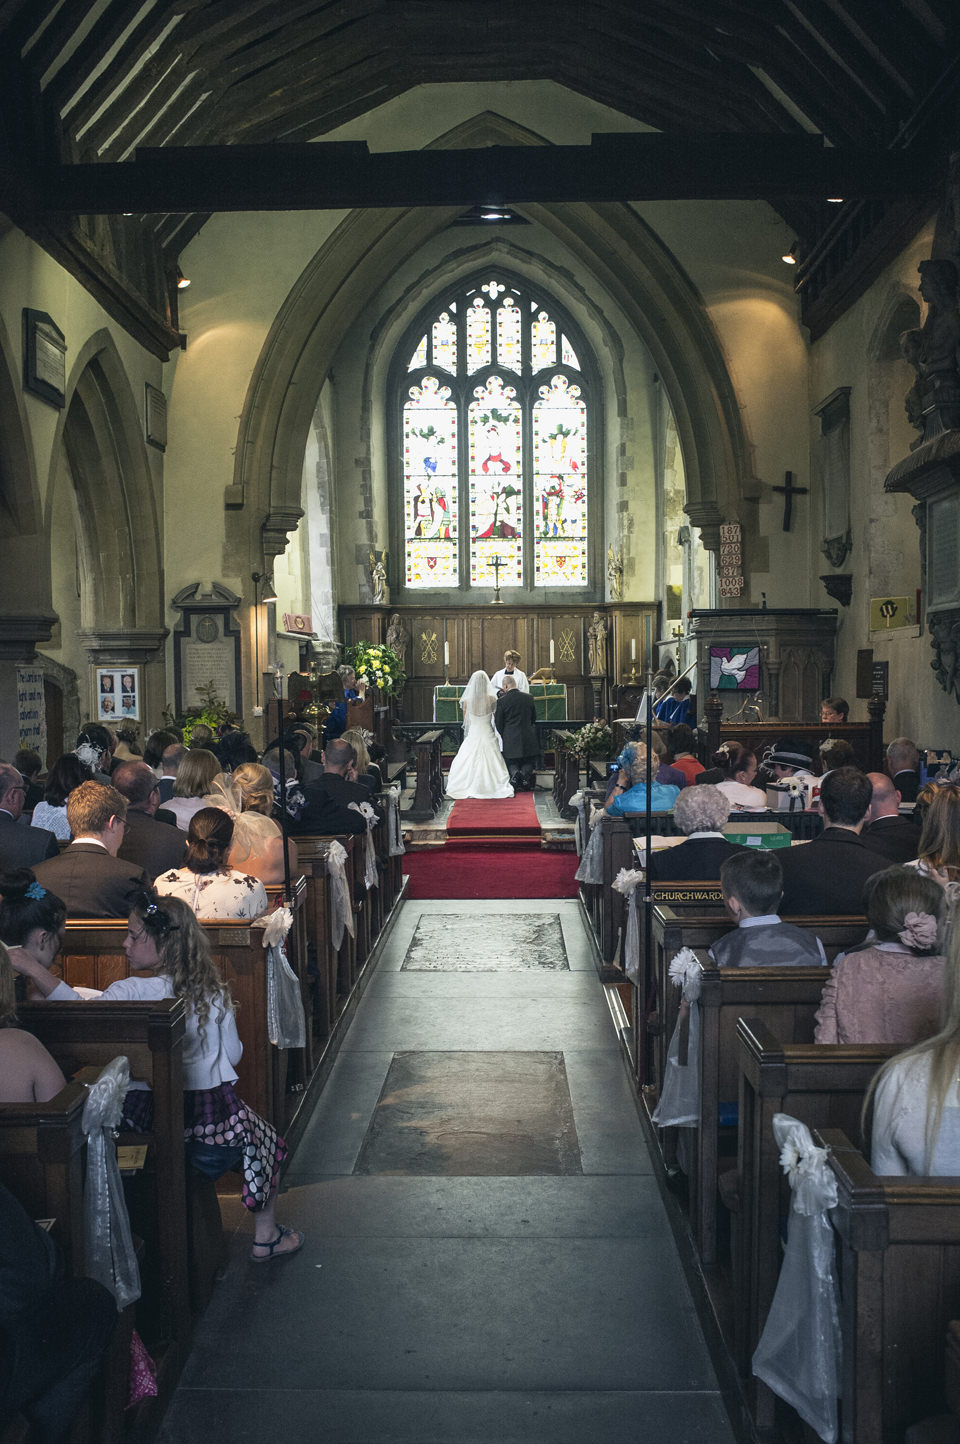 Nicola scott uk wedding photographs (48)